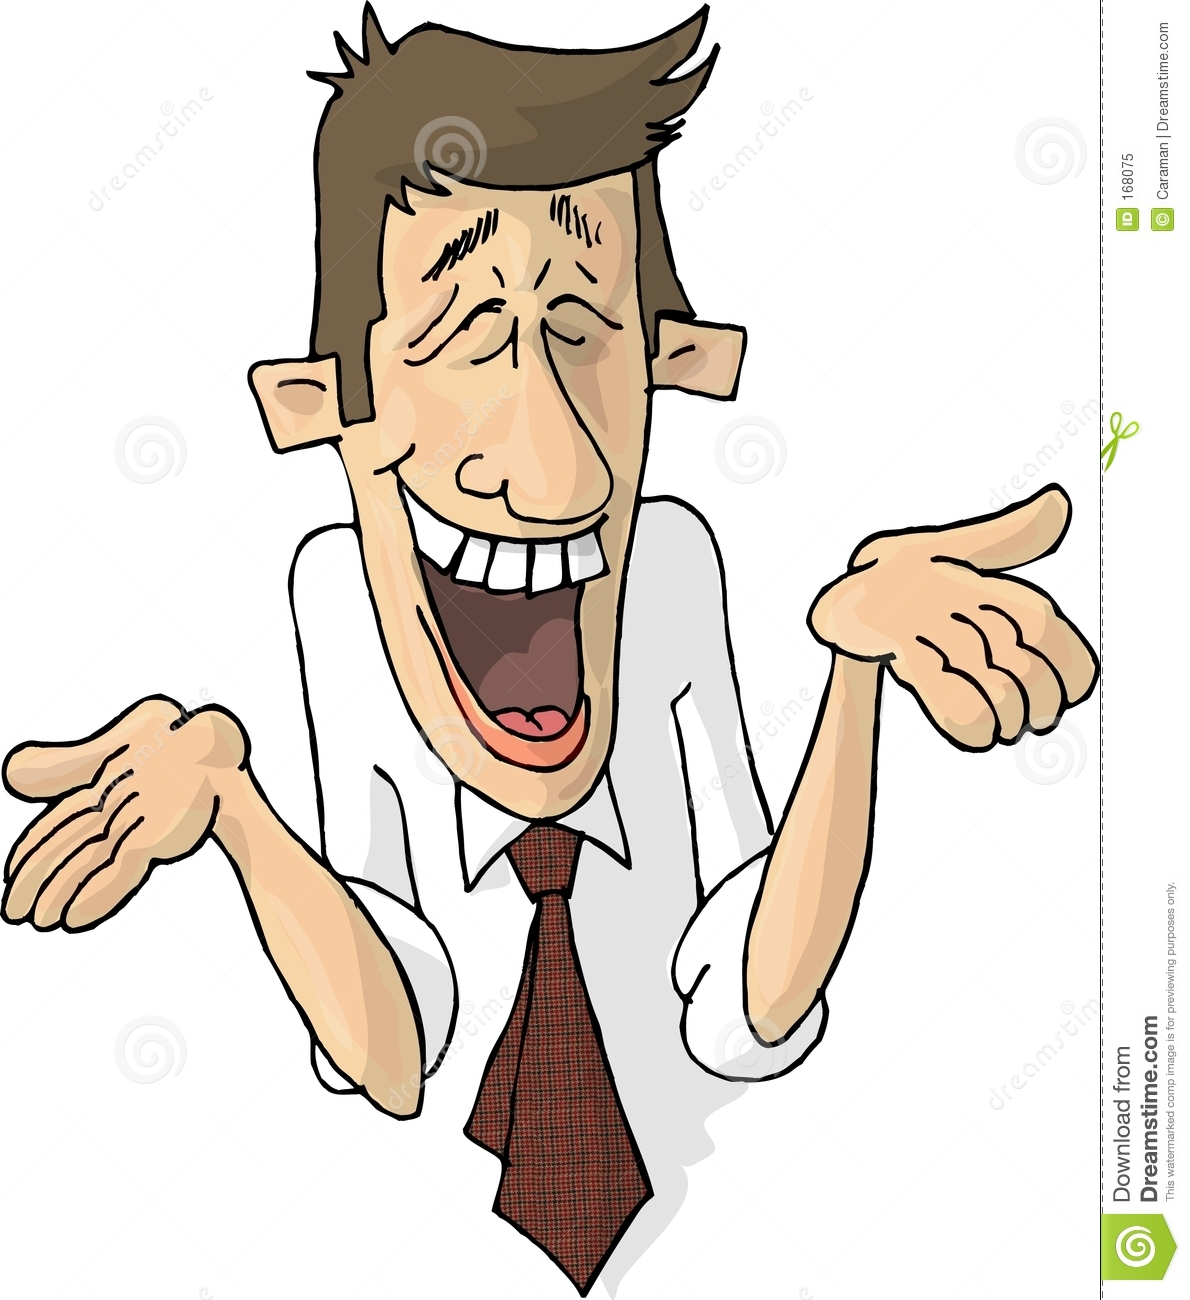 Laughing man clipart hd image royalty free library Laughing man clipart hd - ClipartFest image royalty free library